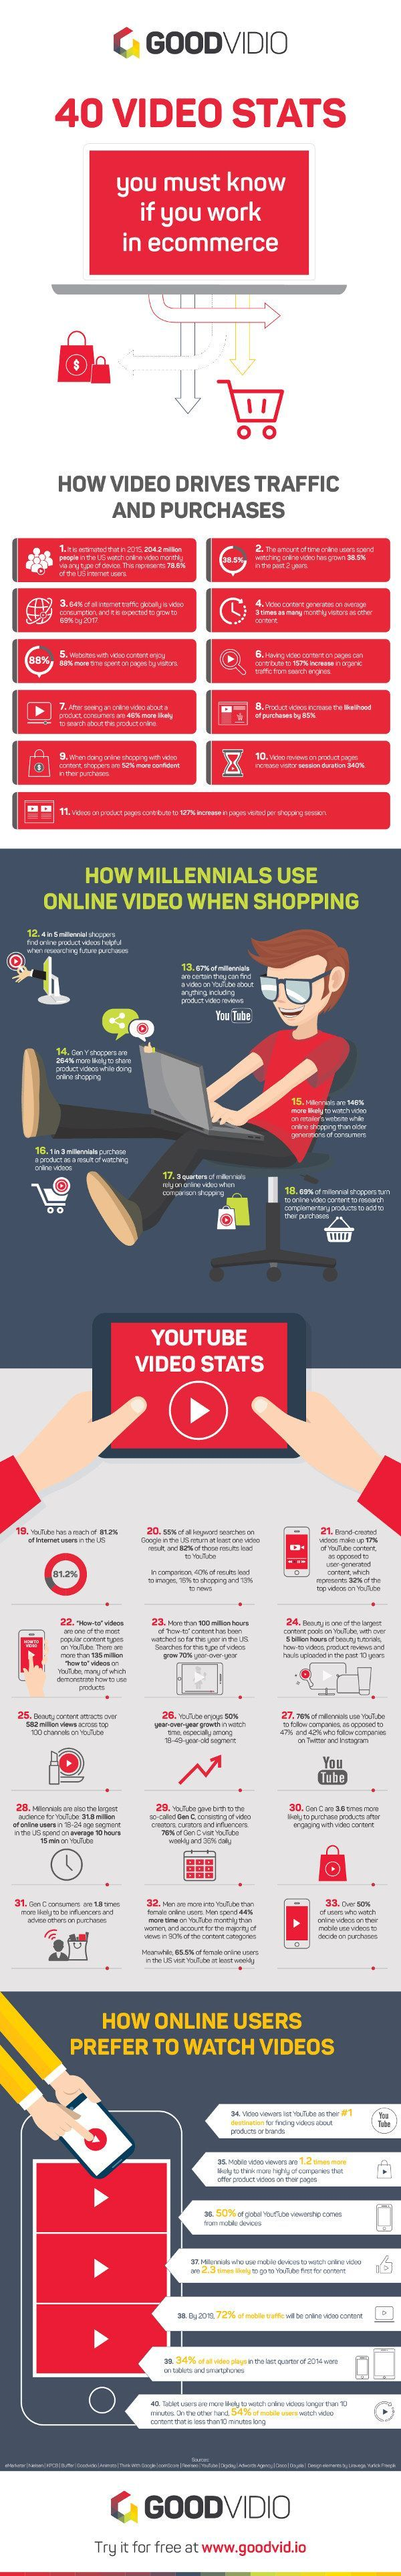 40 E-Commerce Video Stats and Ideas for Marketers | Infographic